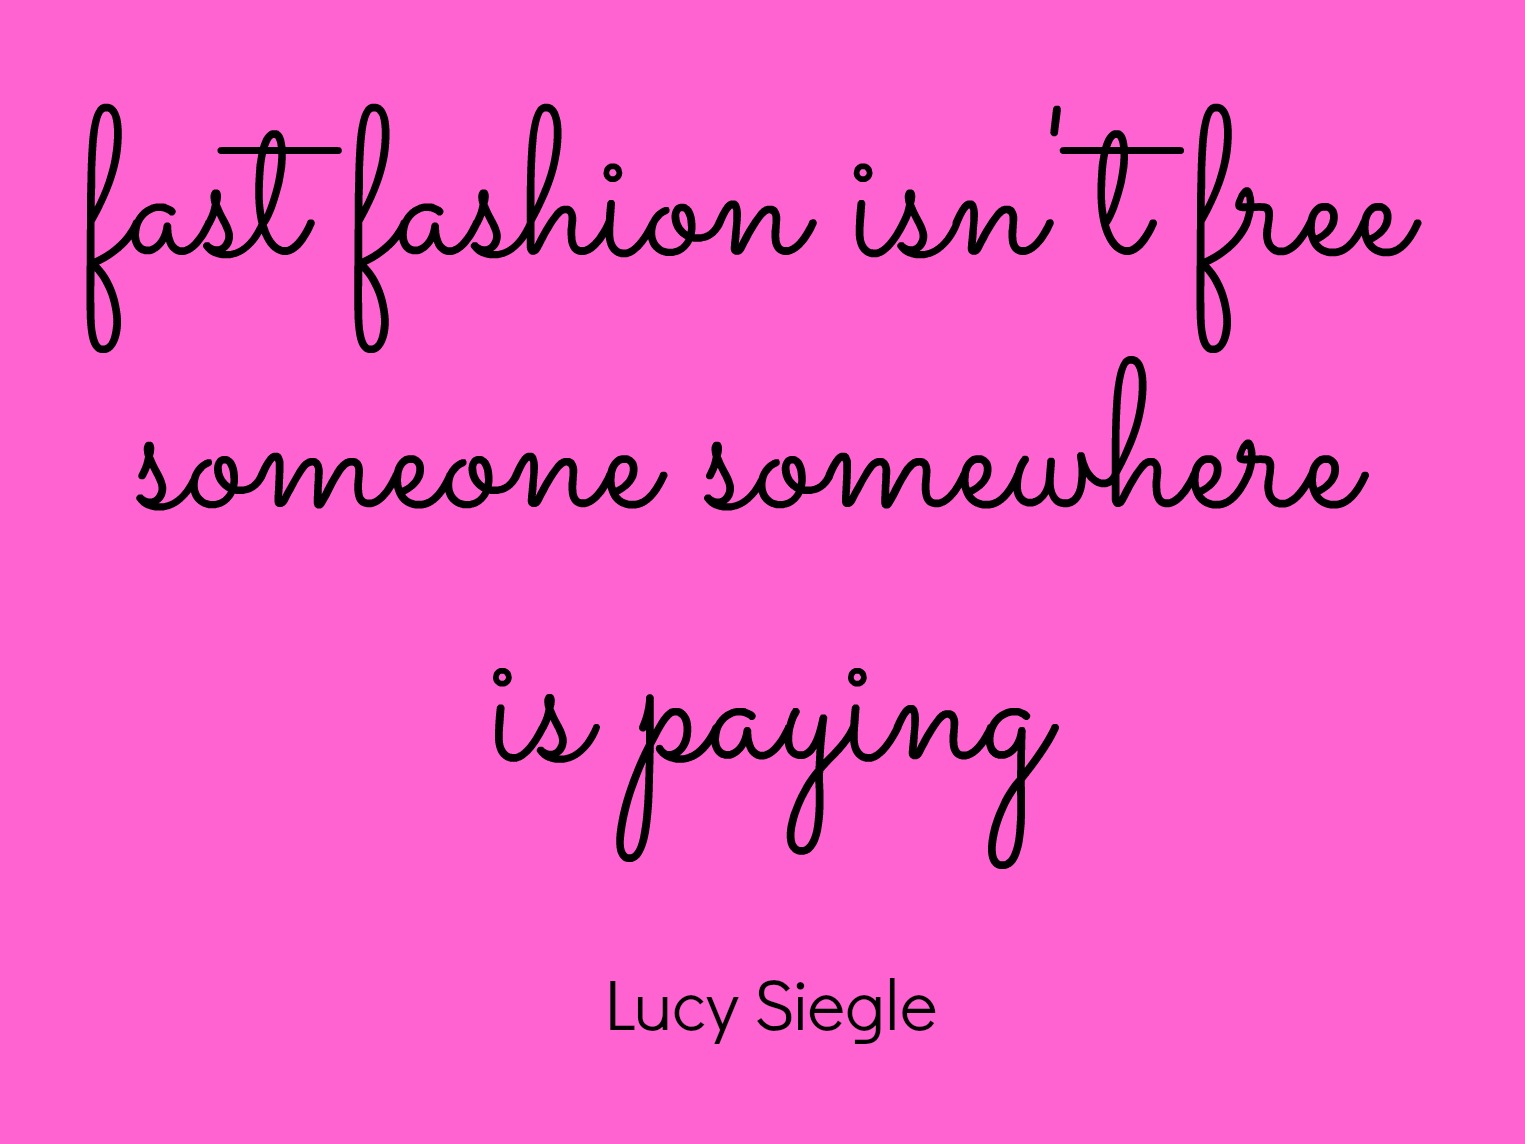 Quote on fast fashion